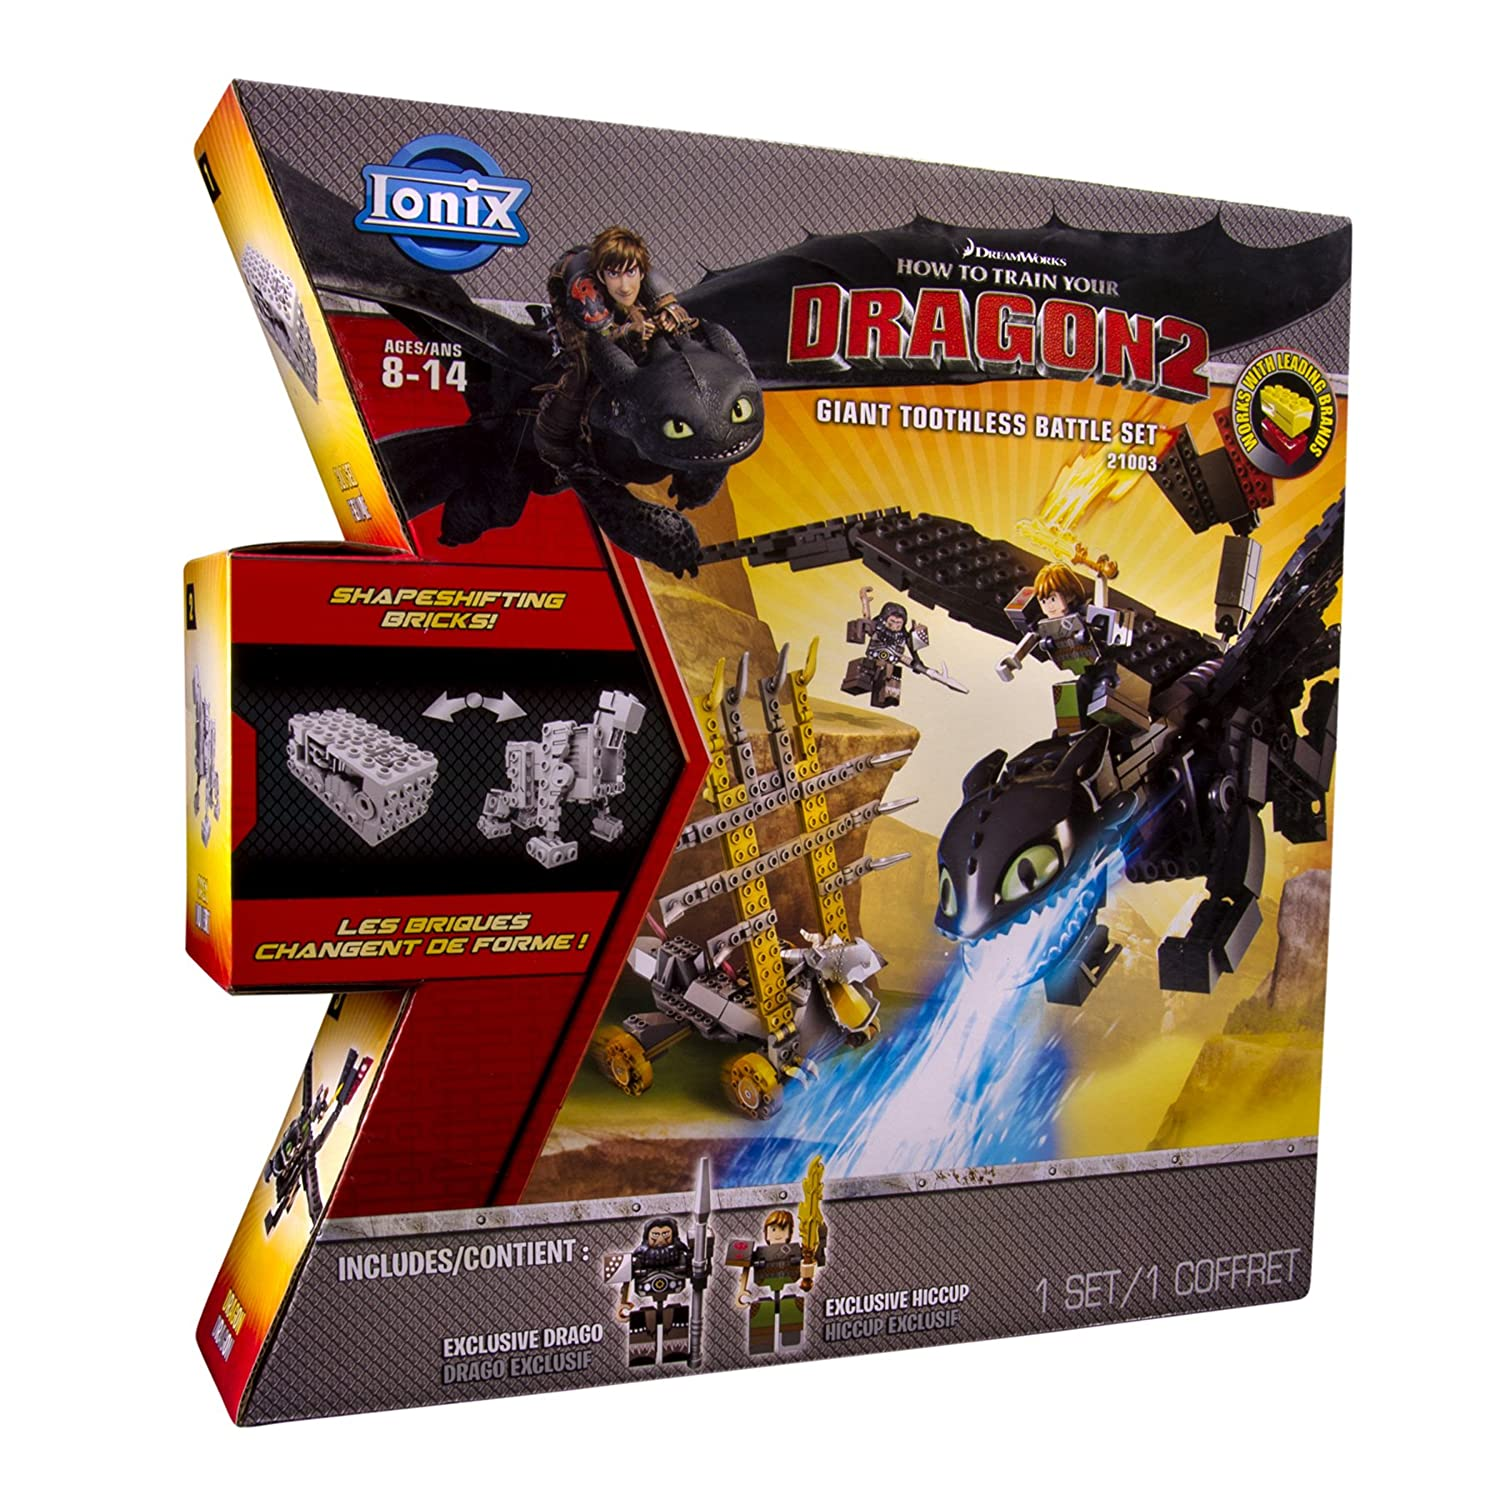 Amazon: Ionix: How To Train Your Dragon 2  Giant Toothless Battle Set:  Toys & Games